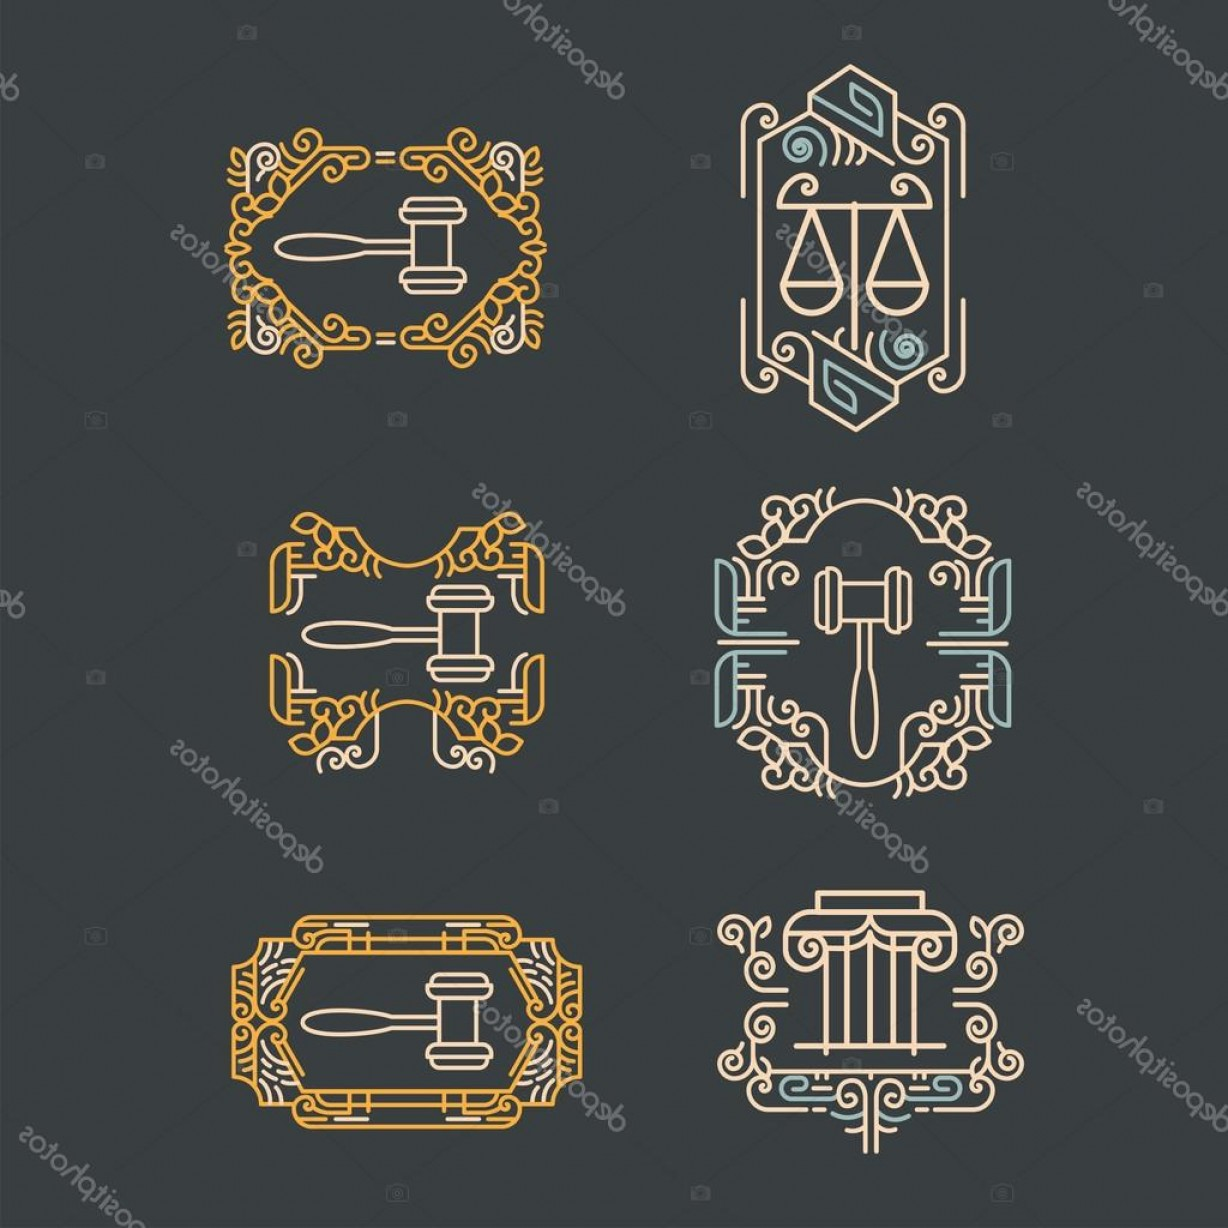 Vintage Sign Vector Attorney-Law: Stock Illustration Law Office Logo Set Vector